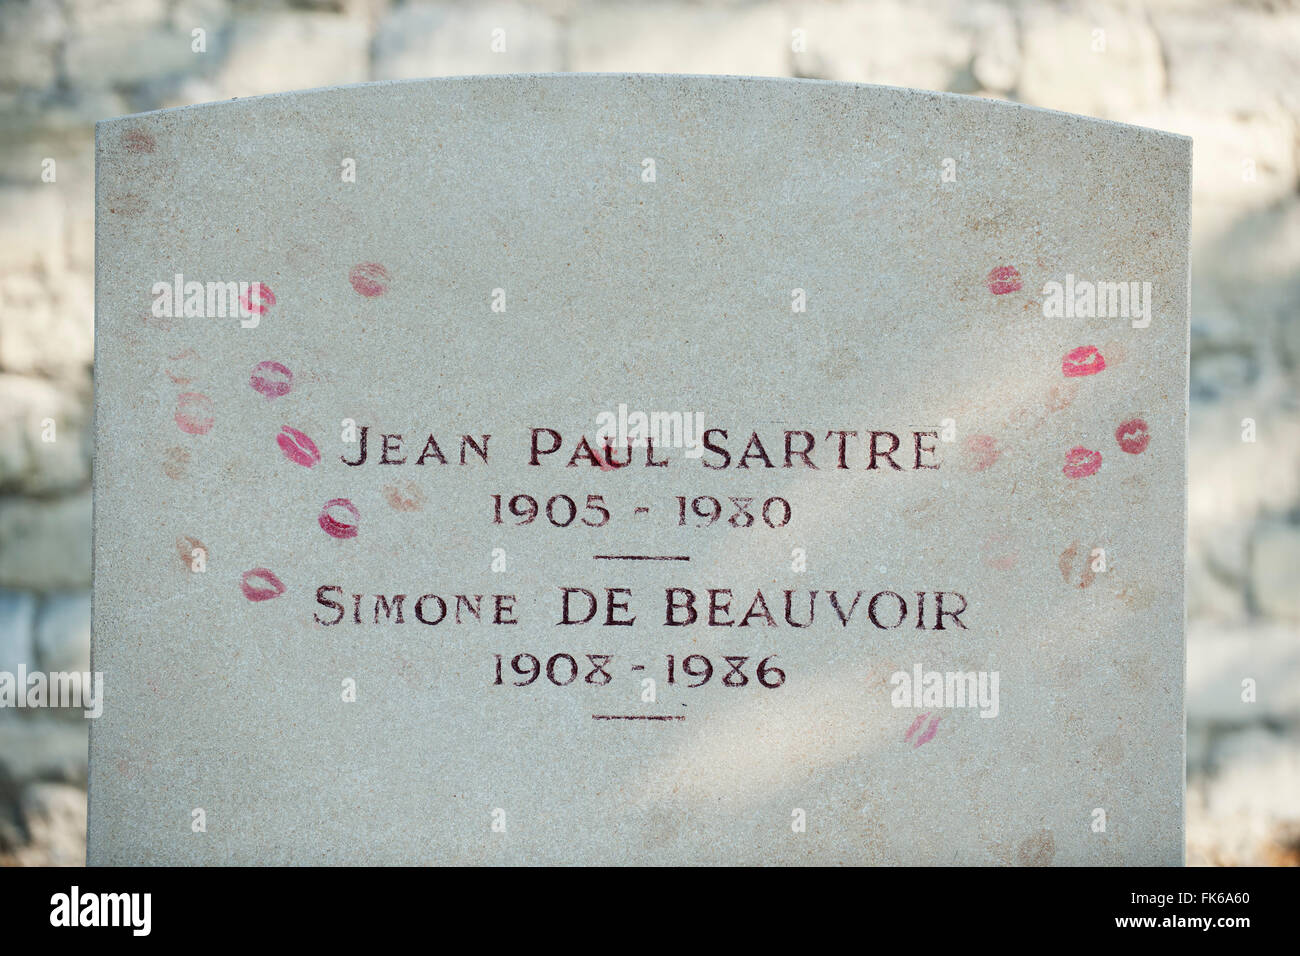 Gravestone of existentialist writers Jean Paul Sartre and Simone de Beauvoir at Pere Lachaise Cemetery, Paris, France, - Stock Image